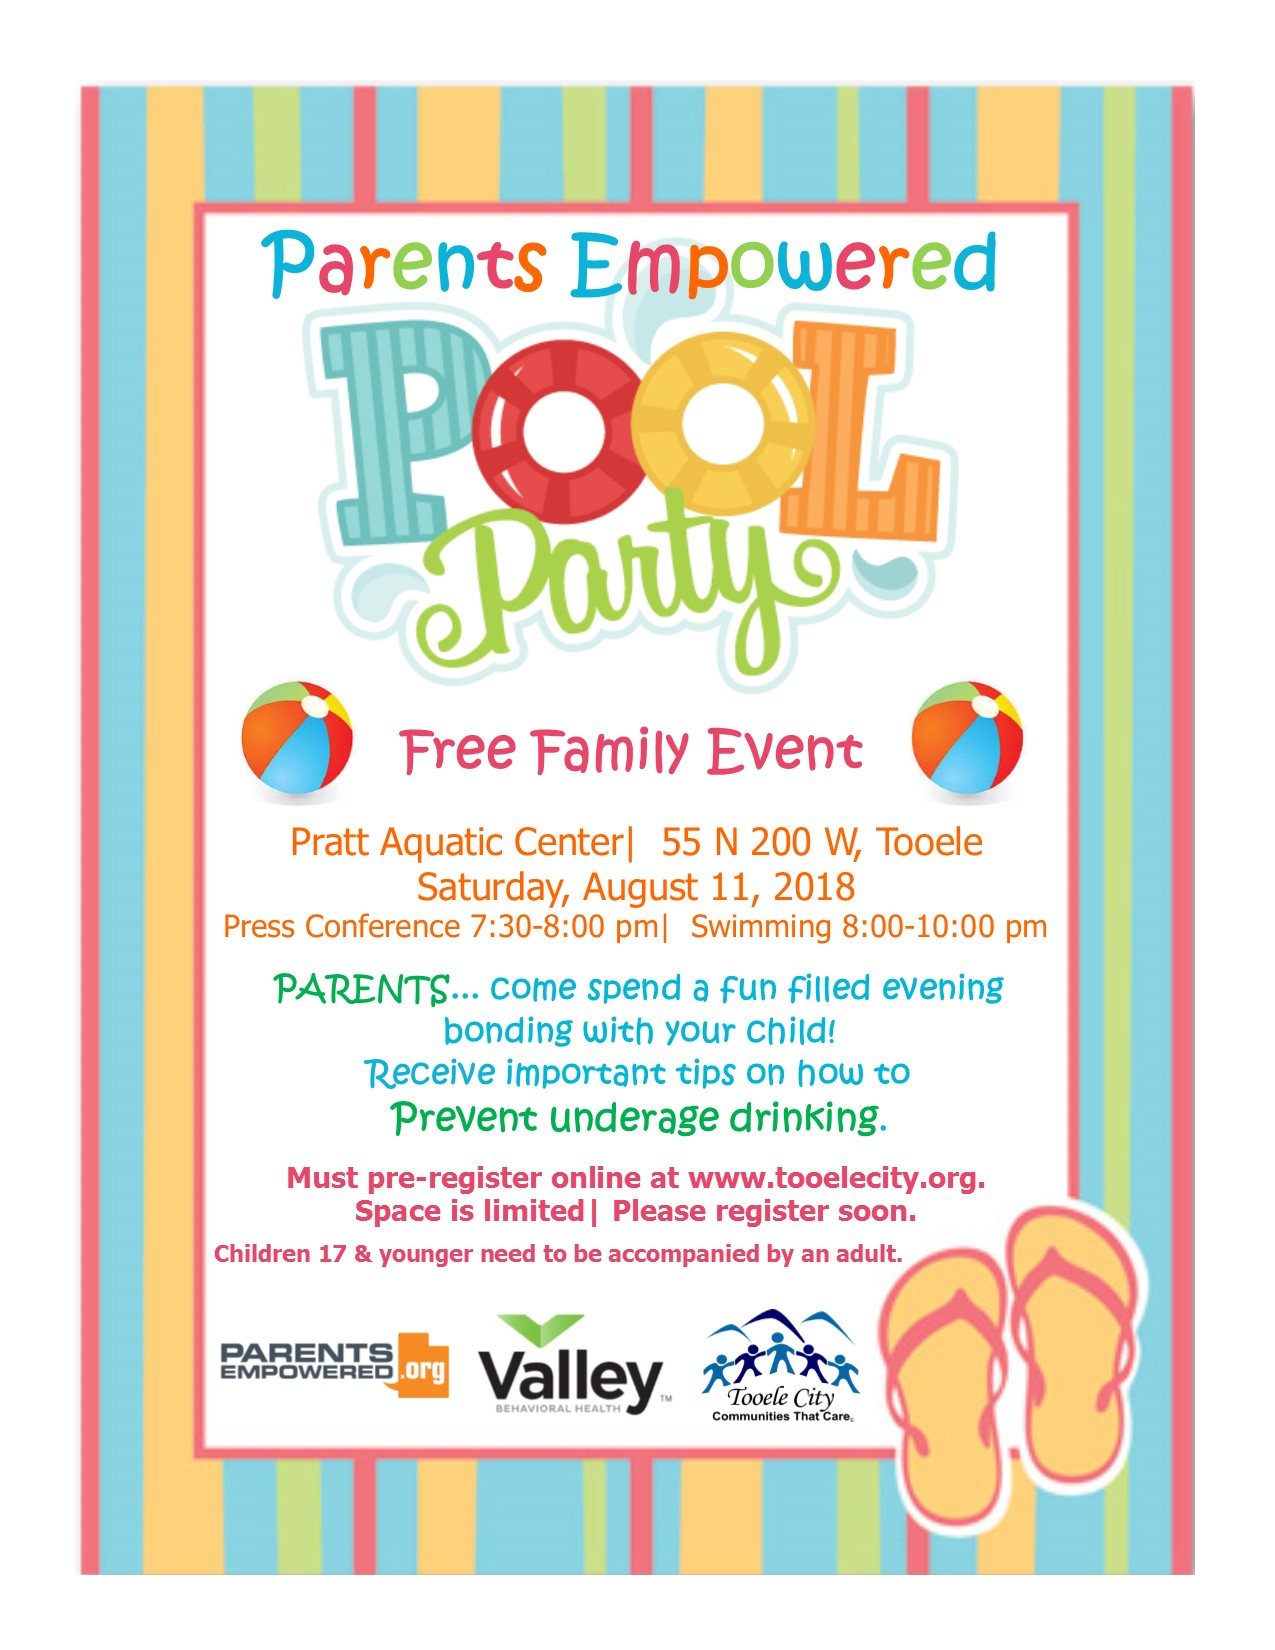 Parents Empowered POOL PARTY! @ Pratt Aquatic Center | Tooele | Utah | United States